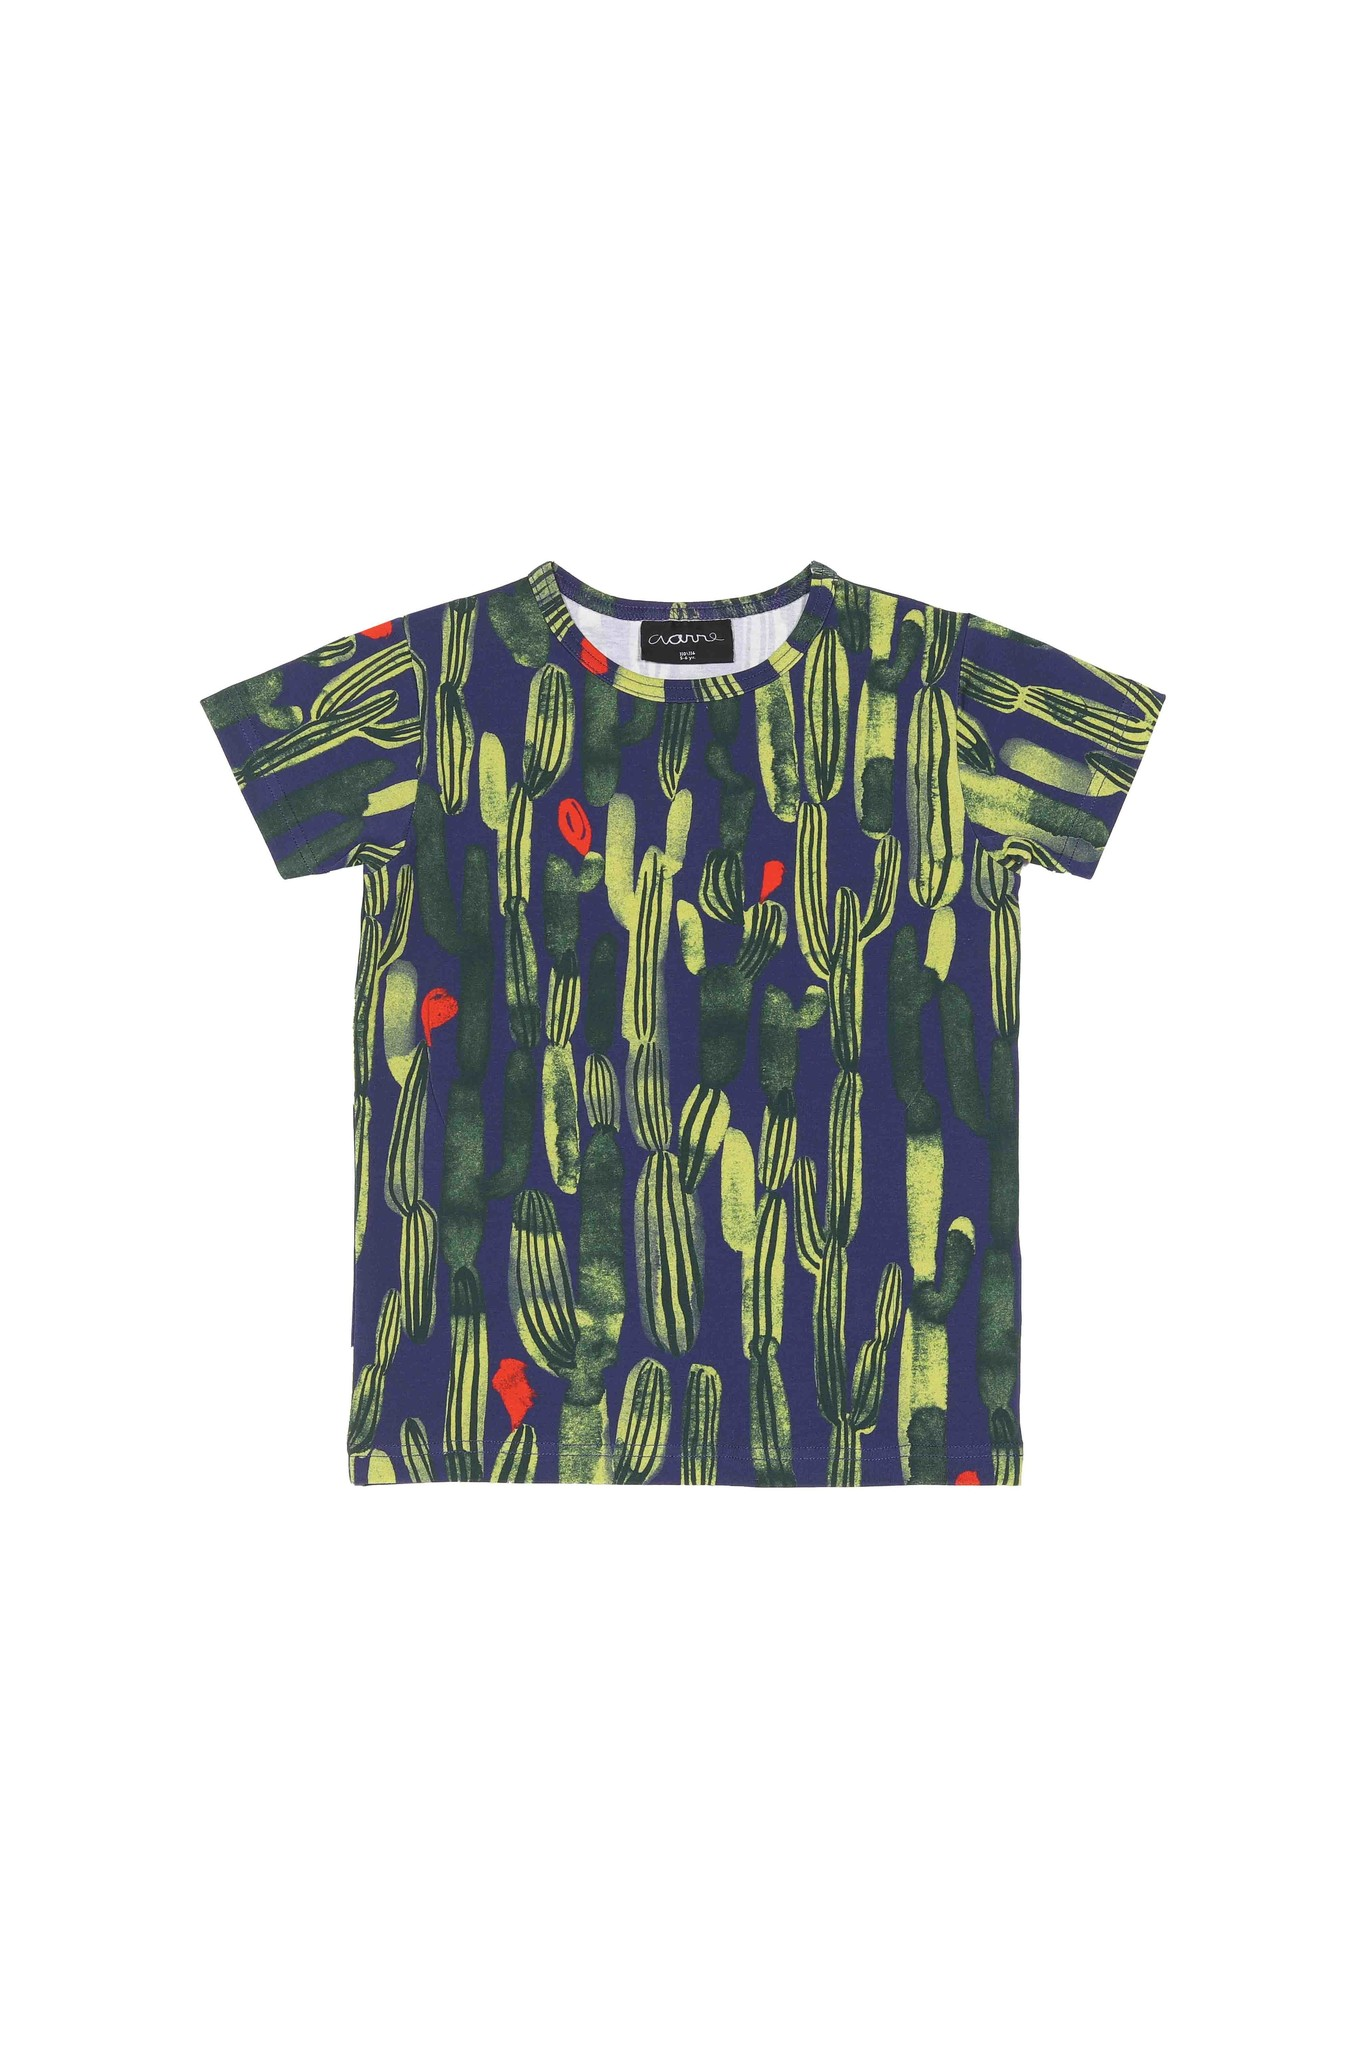 Kids t-shirt Oasis green-colored